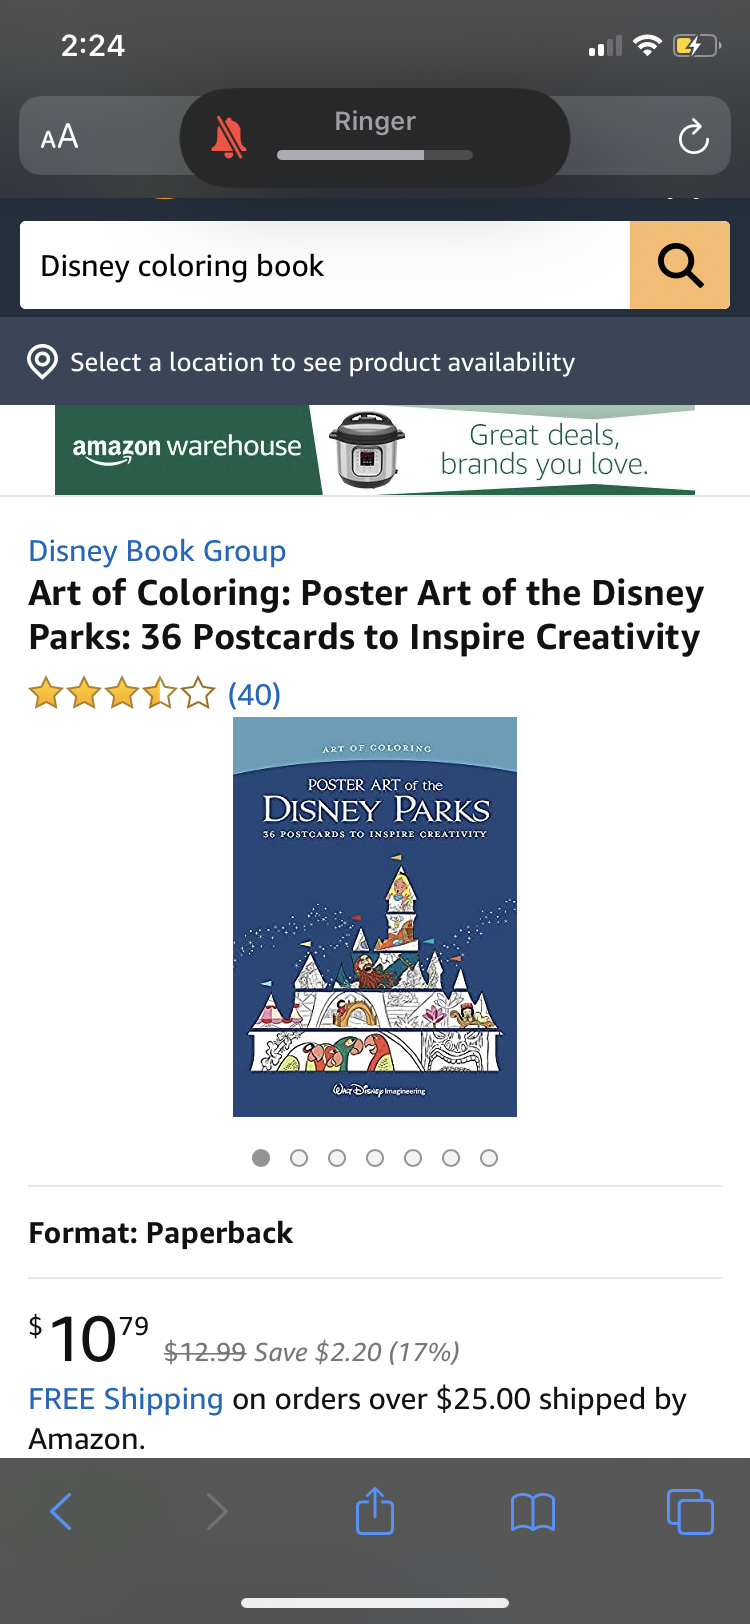 Pin By Stitch On Fangirl Finds In 2020 Disney Posters Disney Books Coloring Books